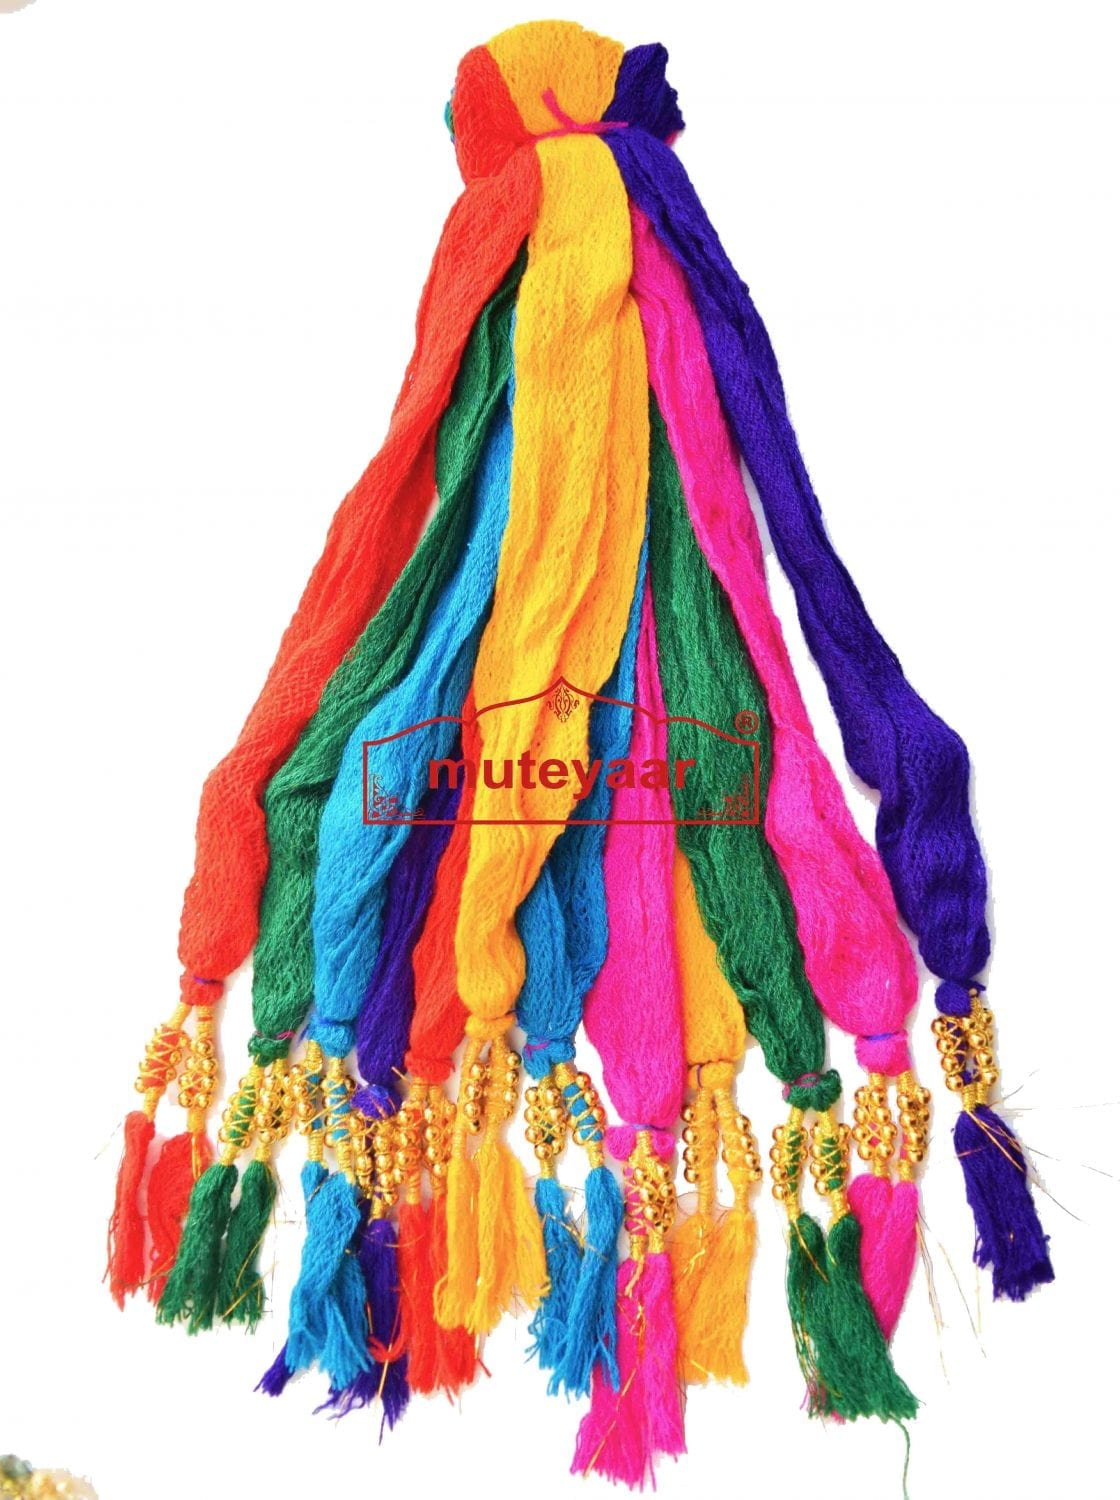 Colorful  Nala / Nara / Nada Drawstrings with beads - Lot of 12 pieces different Colors 1